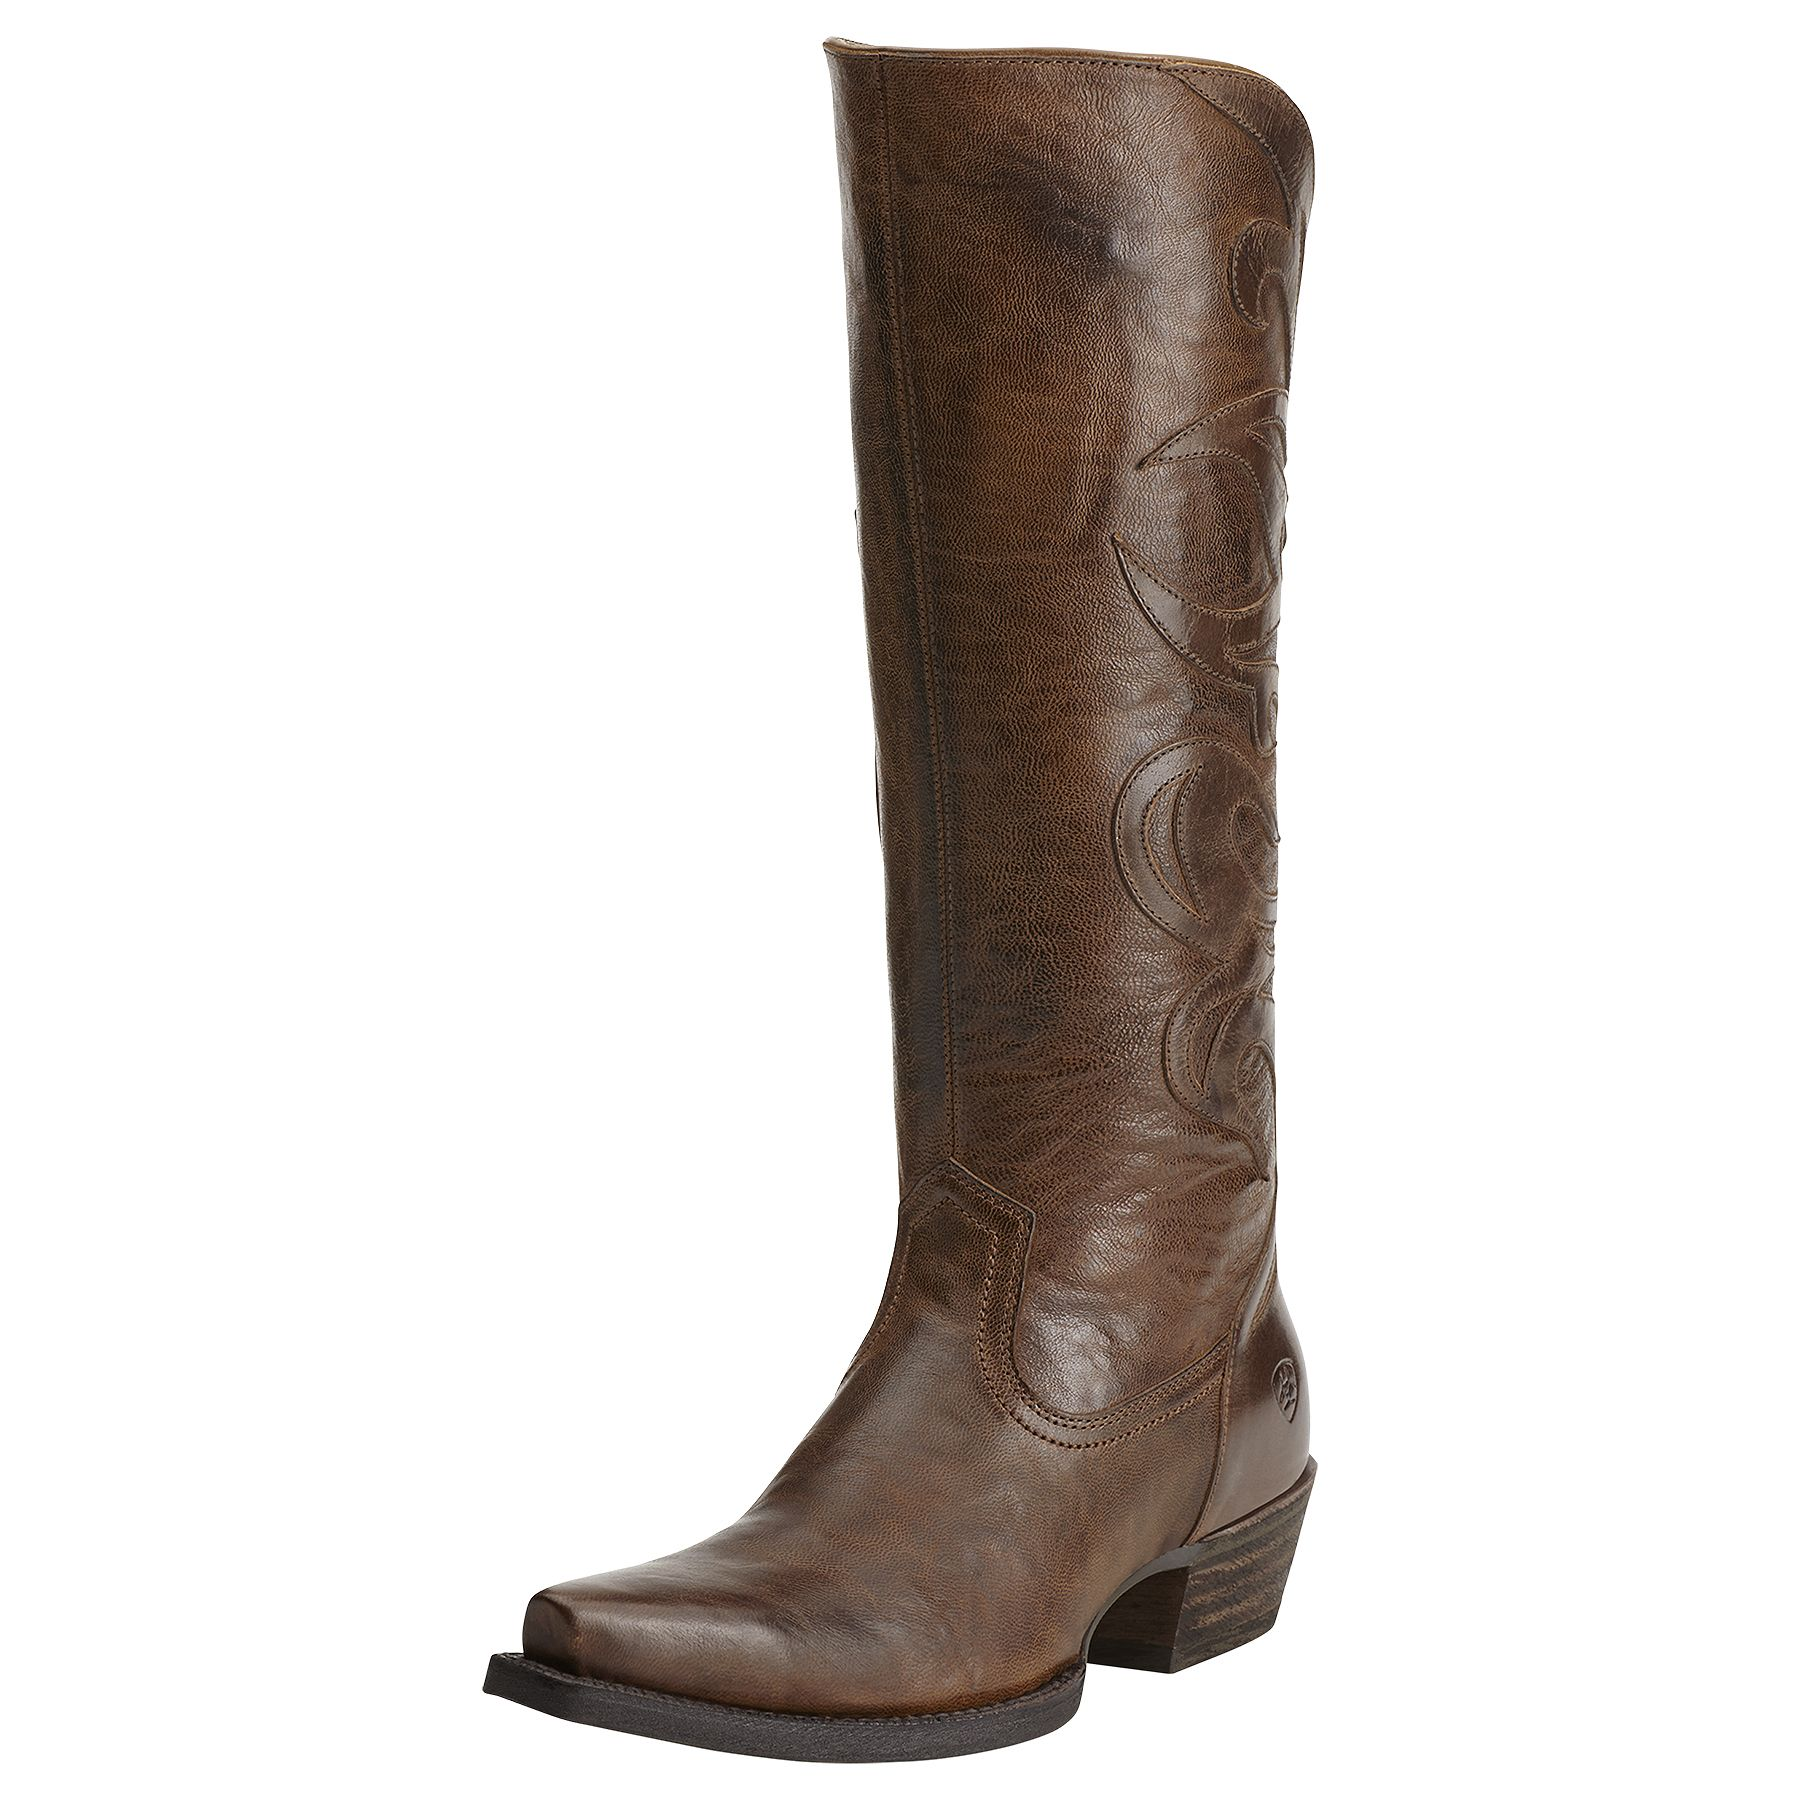 Ariat Lyric | Ariat Boots from Wheelersfeed.com